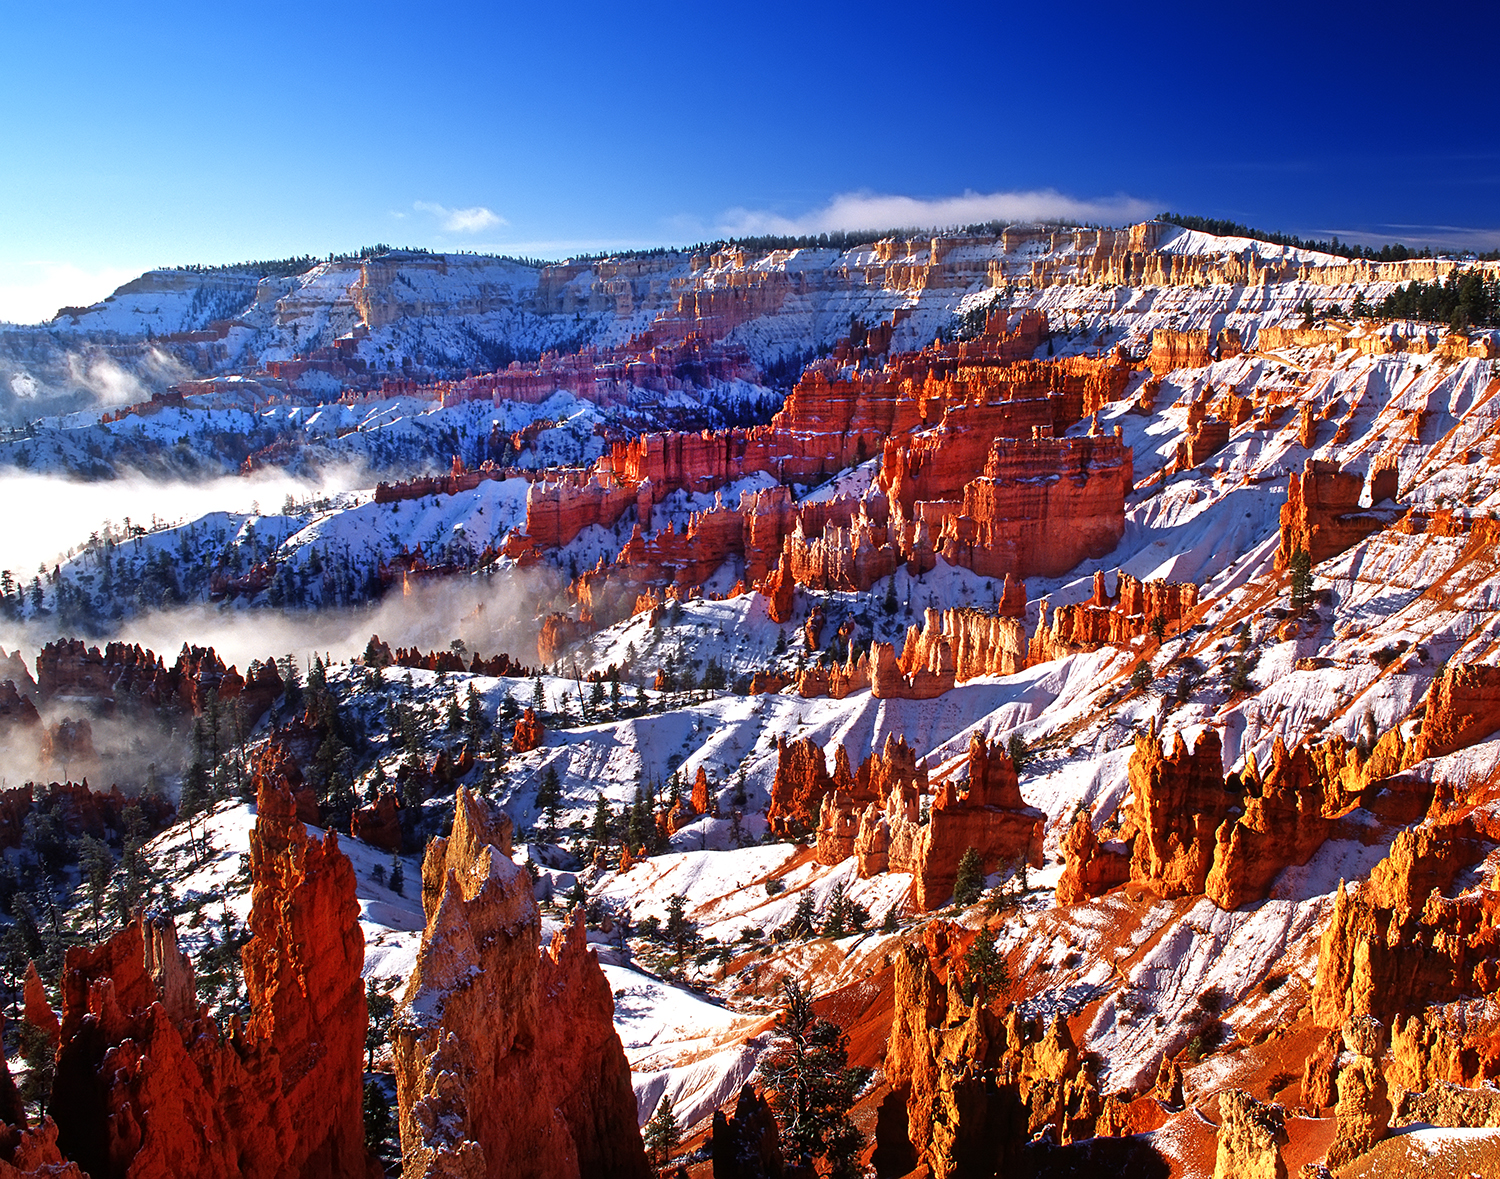 Clearing Winter Storm, Bryce Canyon NP